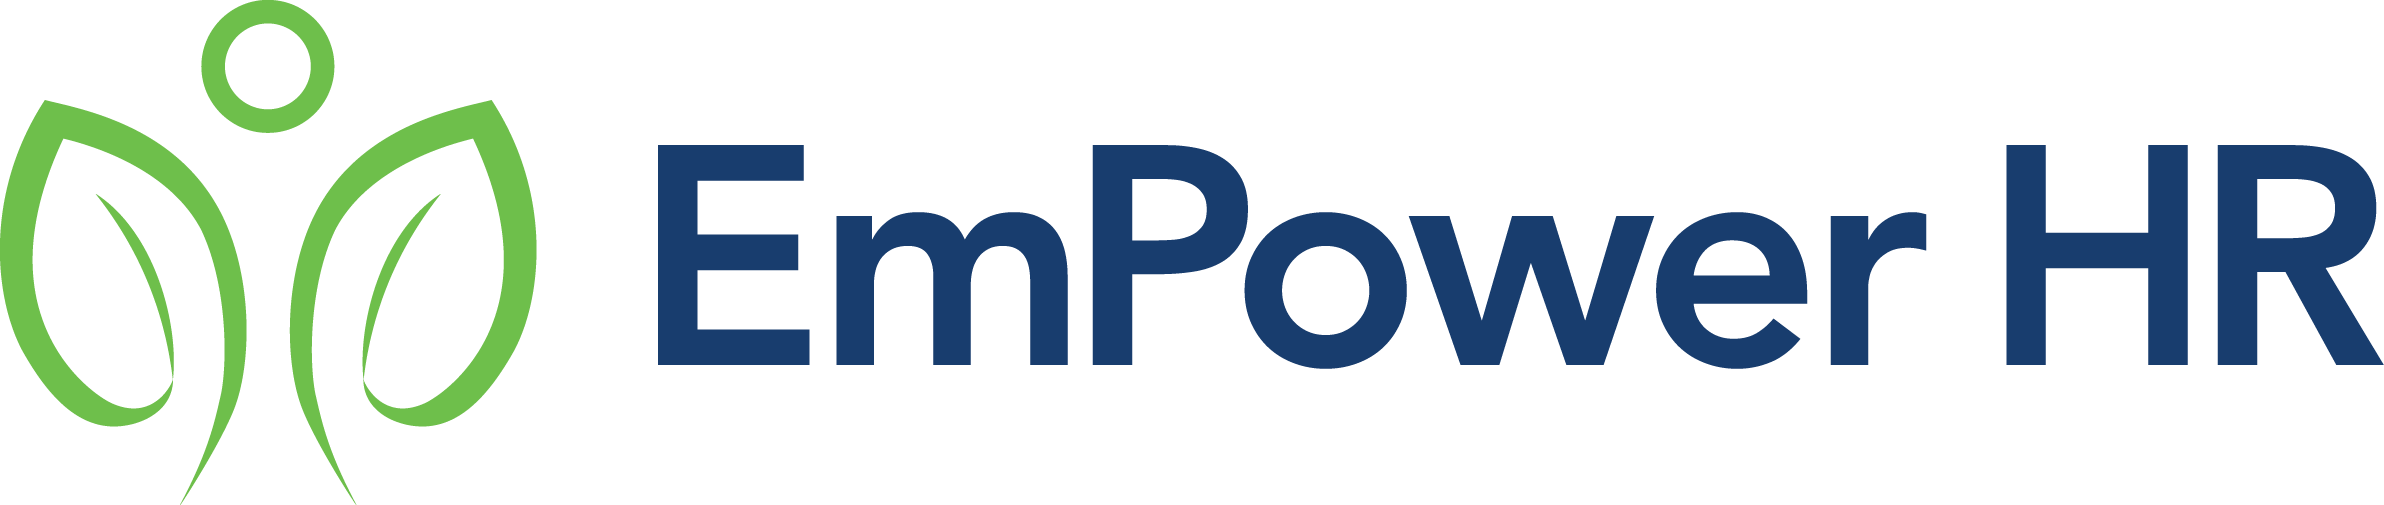 EmPower HR logo